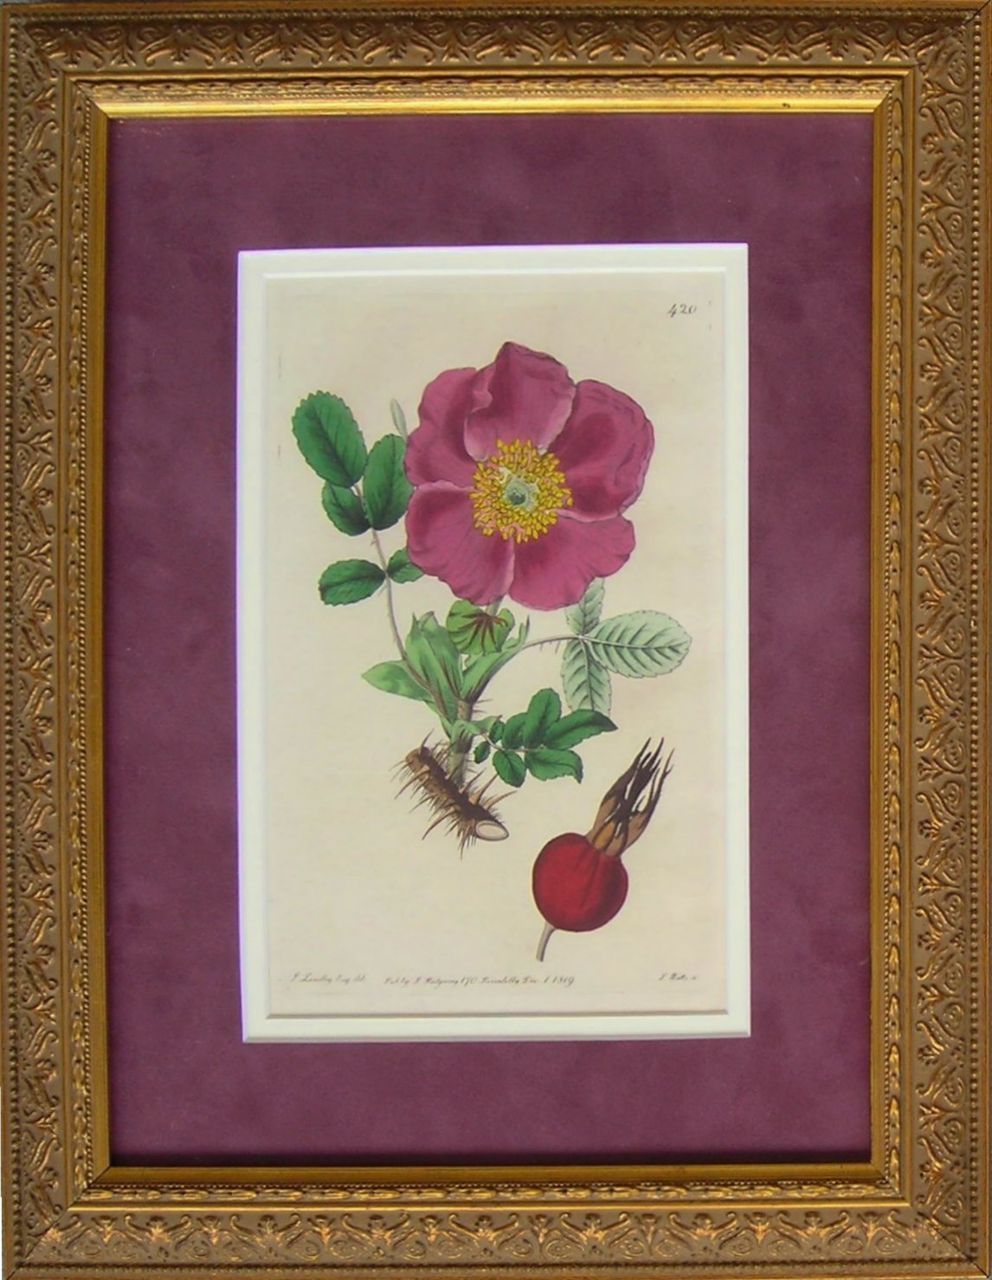 Hedgehog Rose - Botanical Engraving, circa 1819